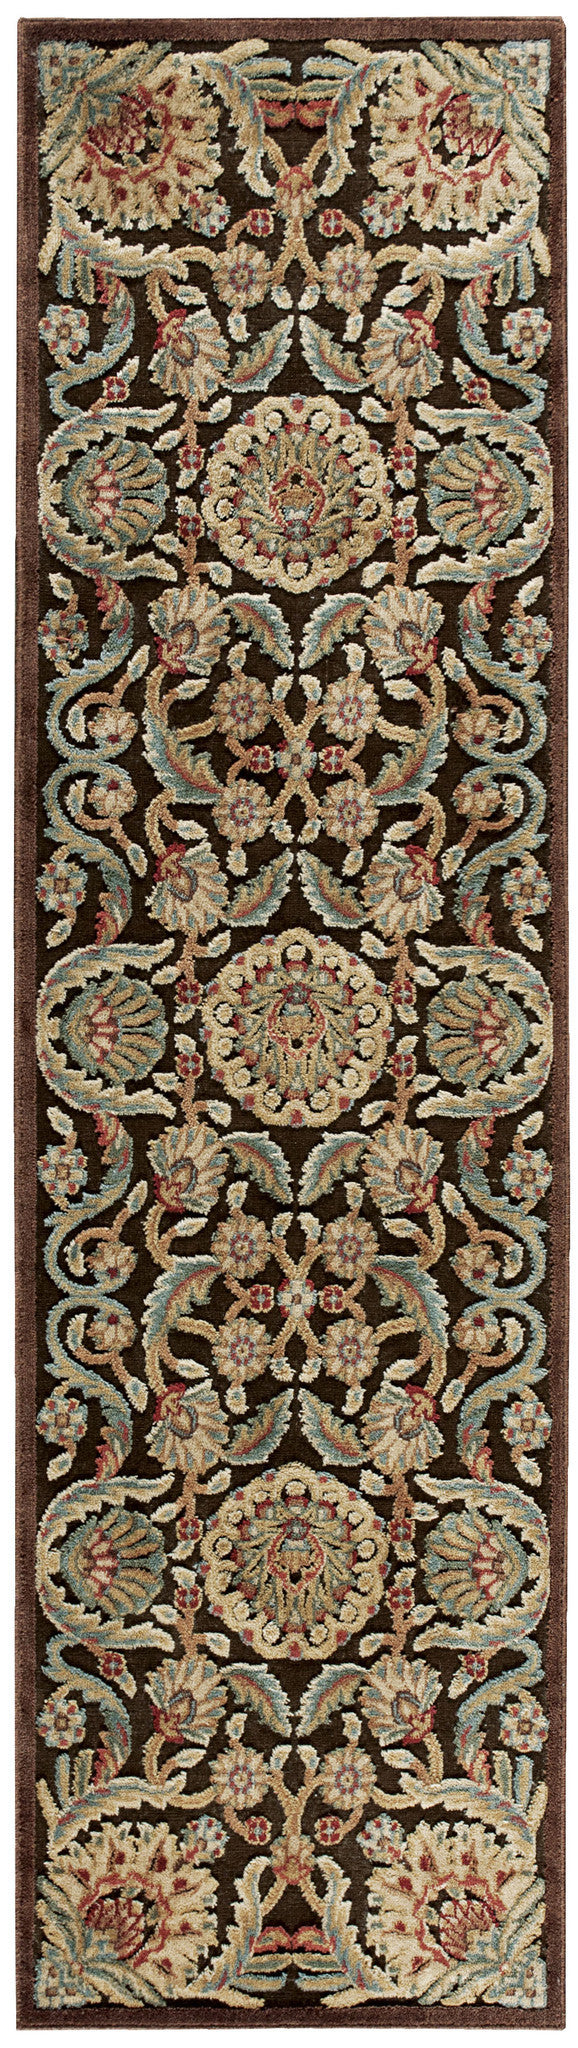 Nourison Graphic Illusions Chocolate Area Rug GIL17 CHO